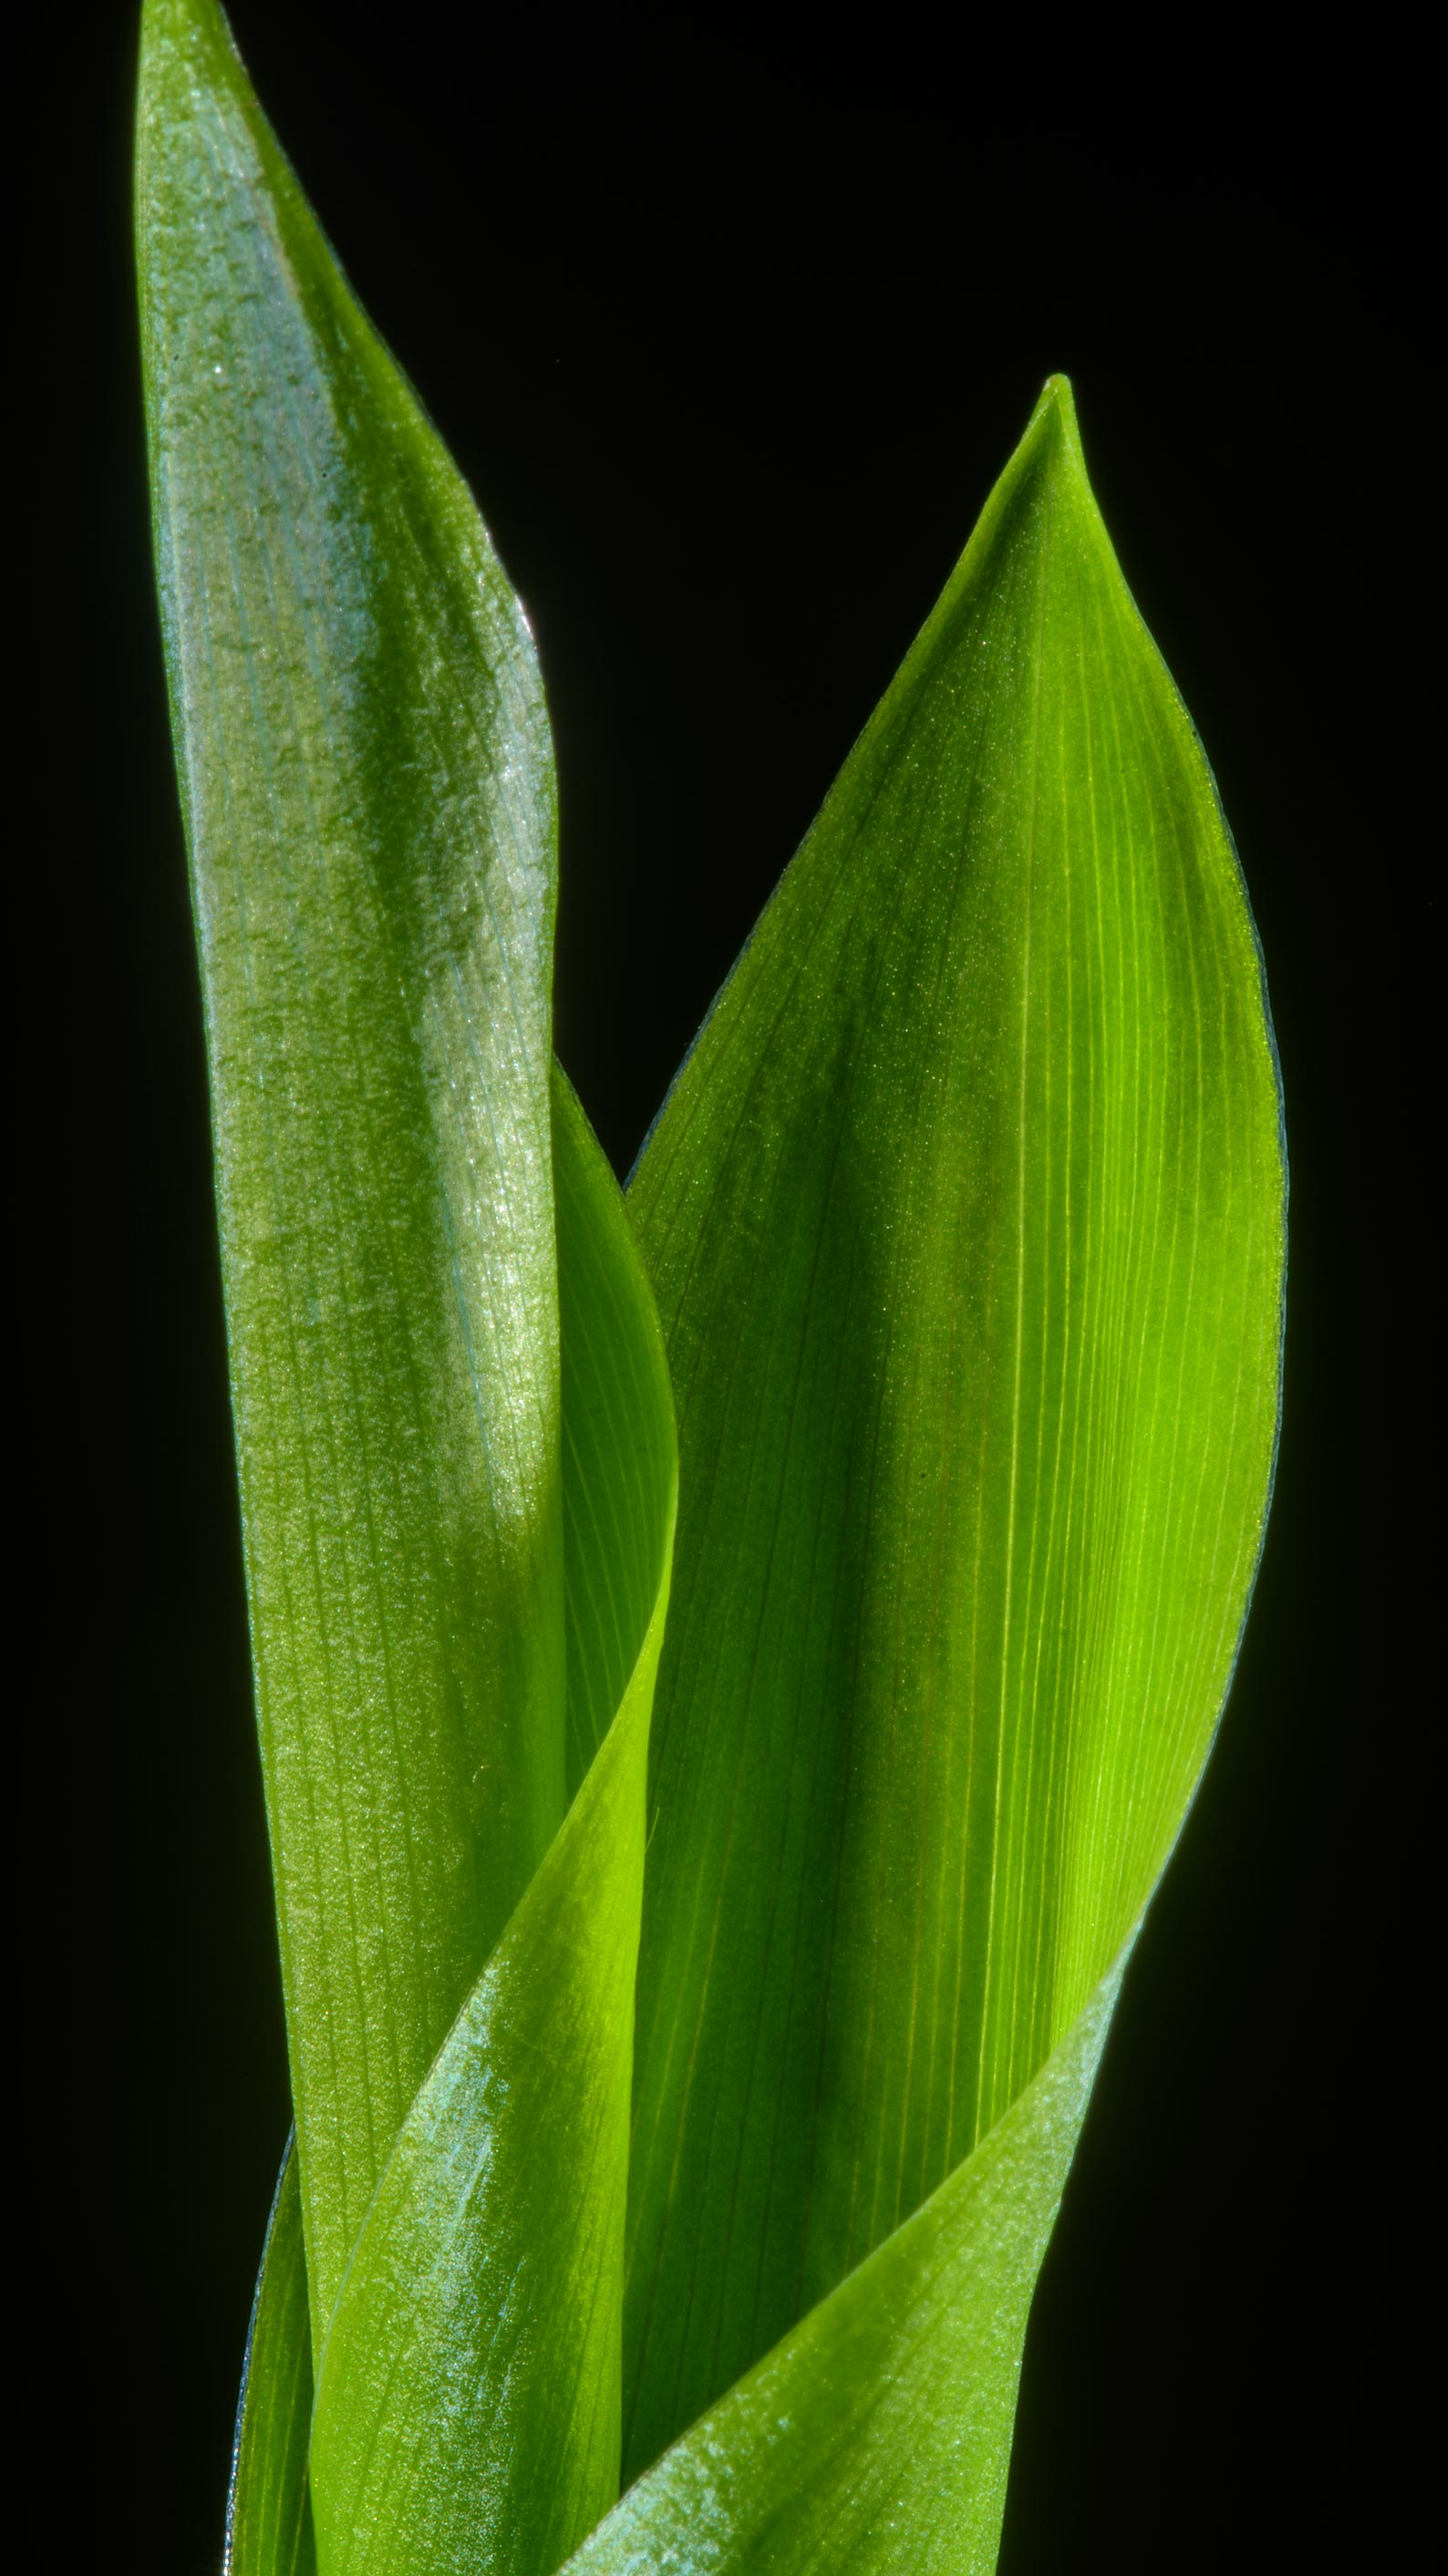 Emerging leaves of Lily-of-the-valley...suburb of St.Petersburg, Russia